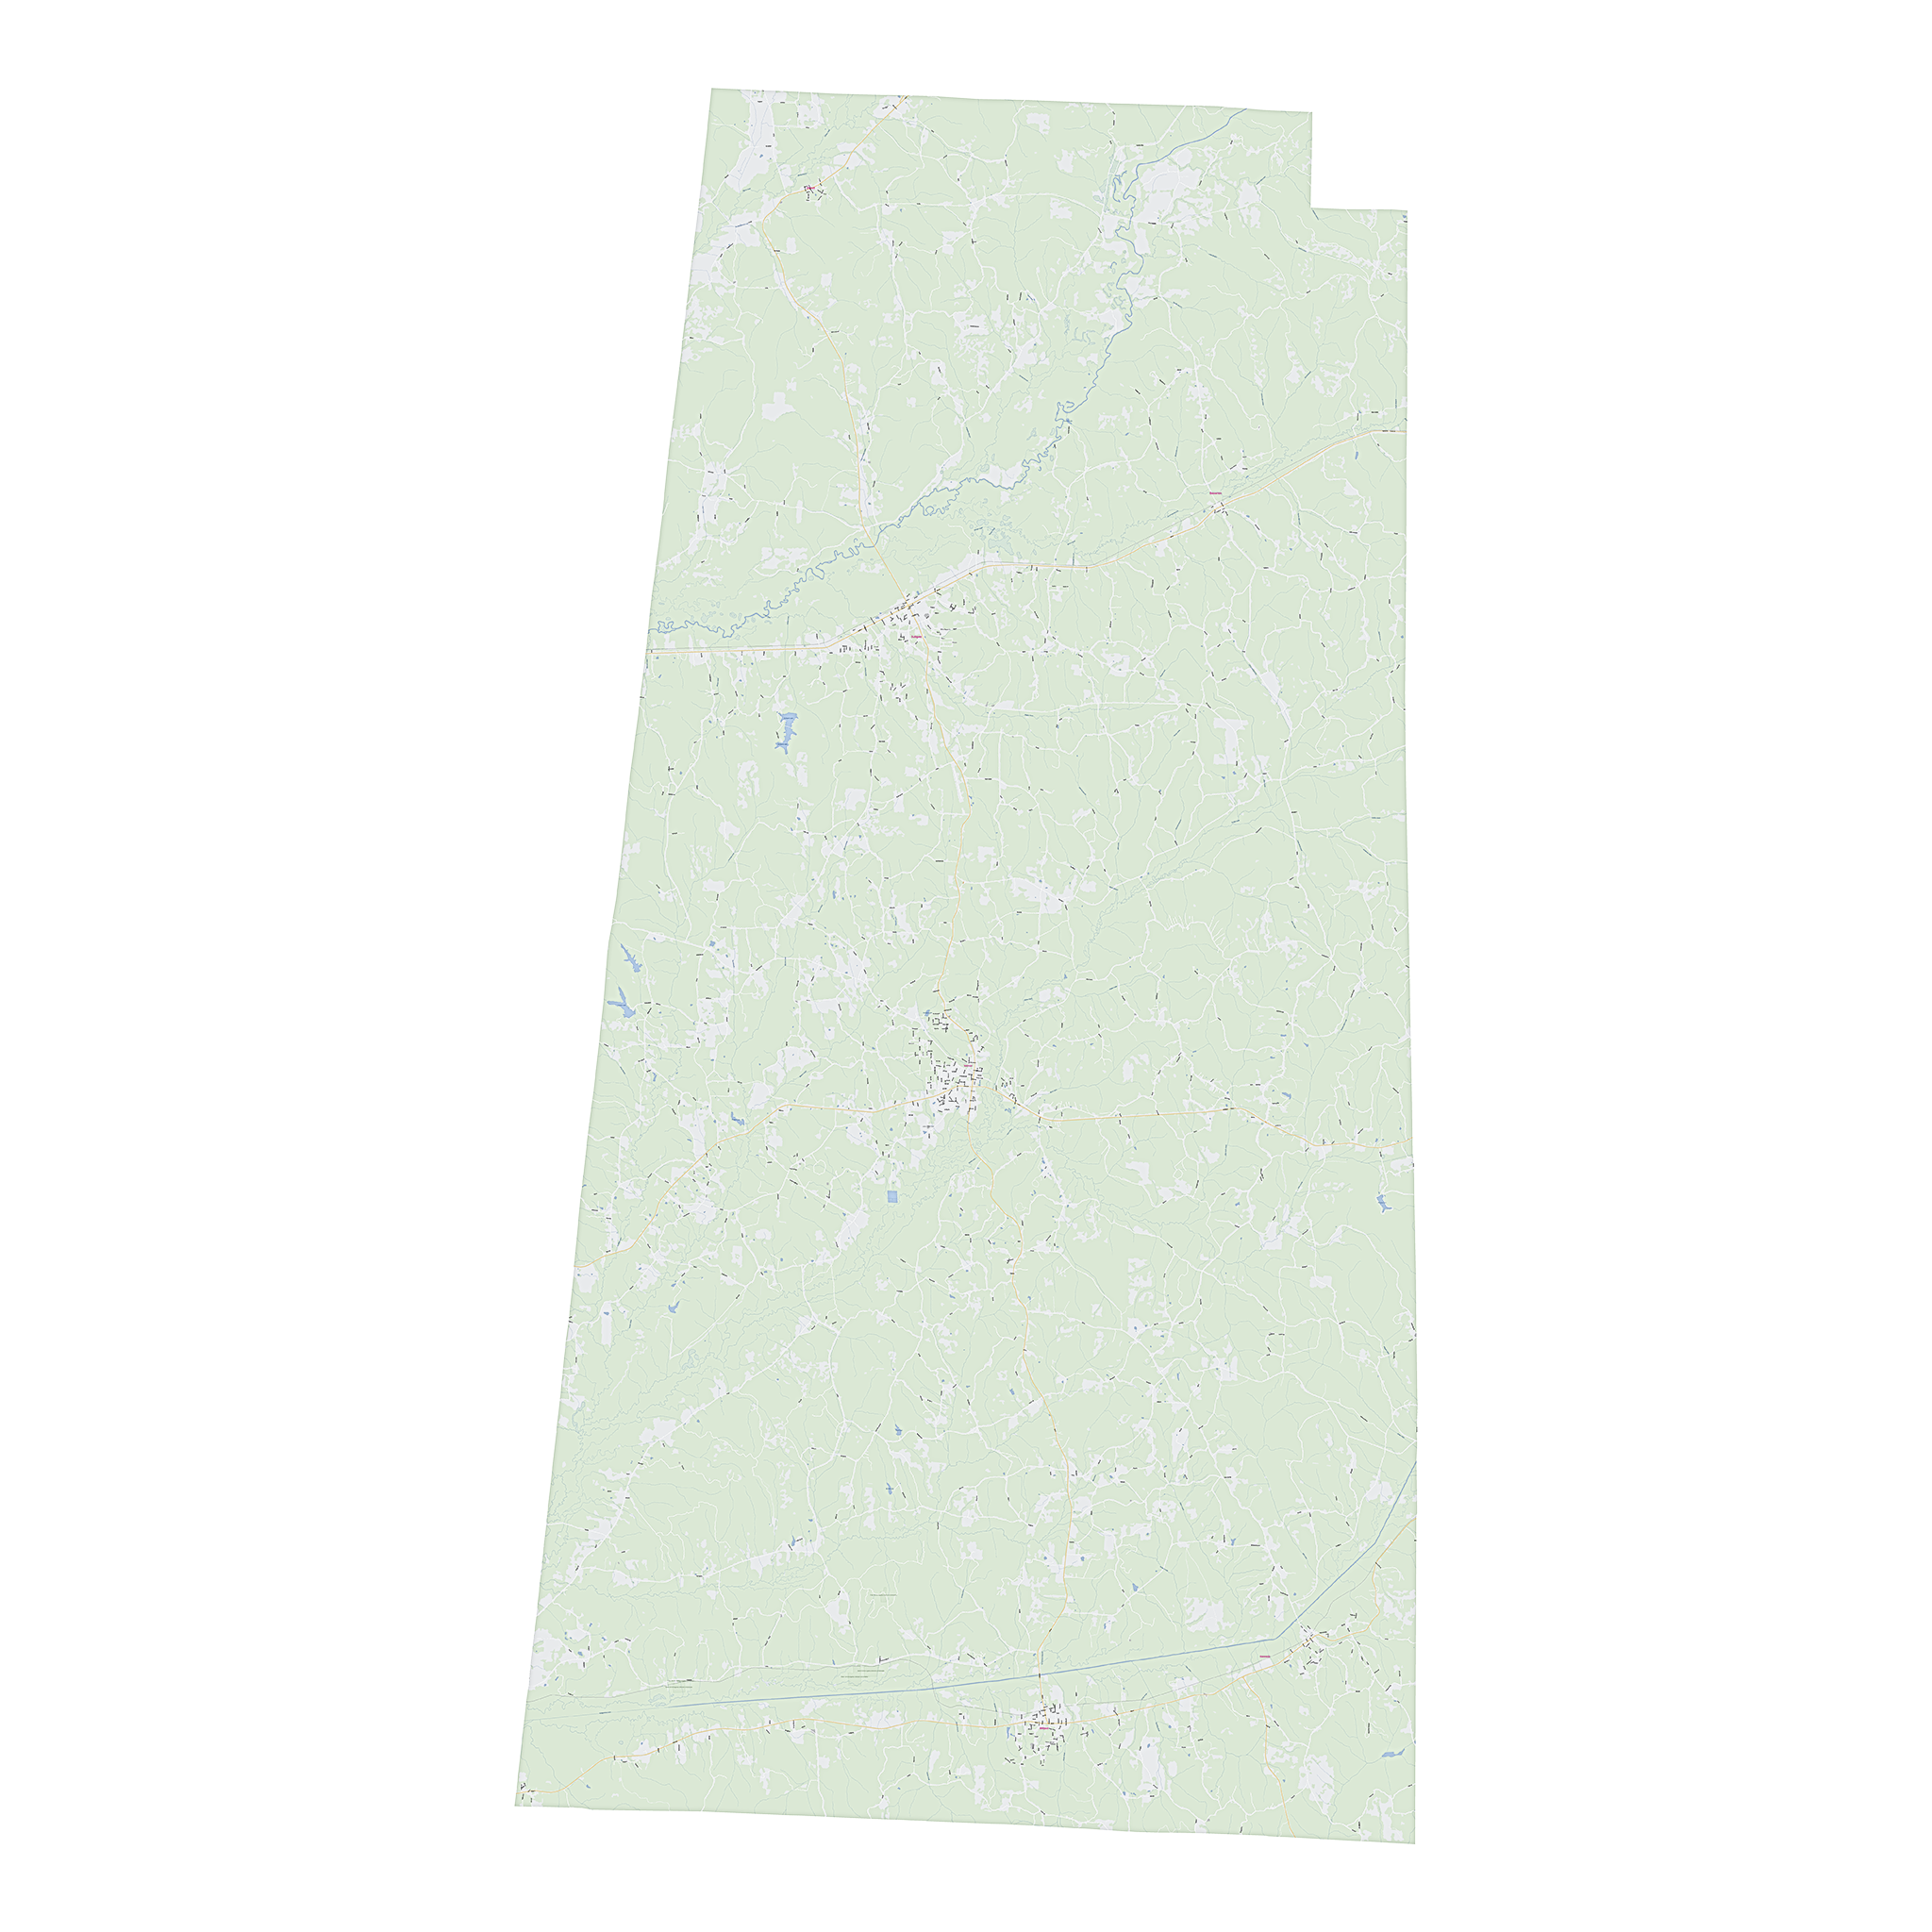 Royalty-free, digital vector street map of Lamar County, Alabama.